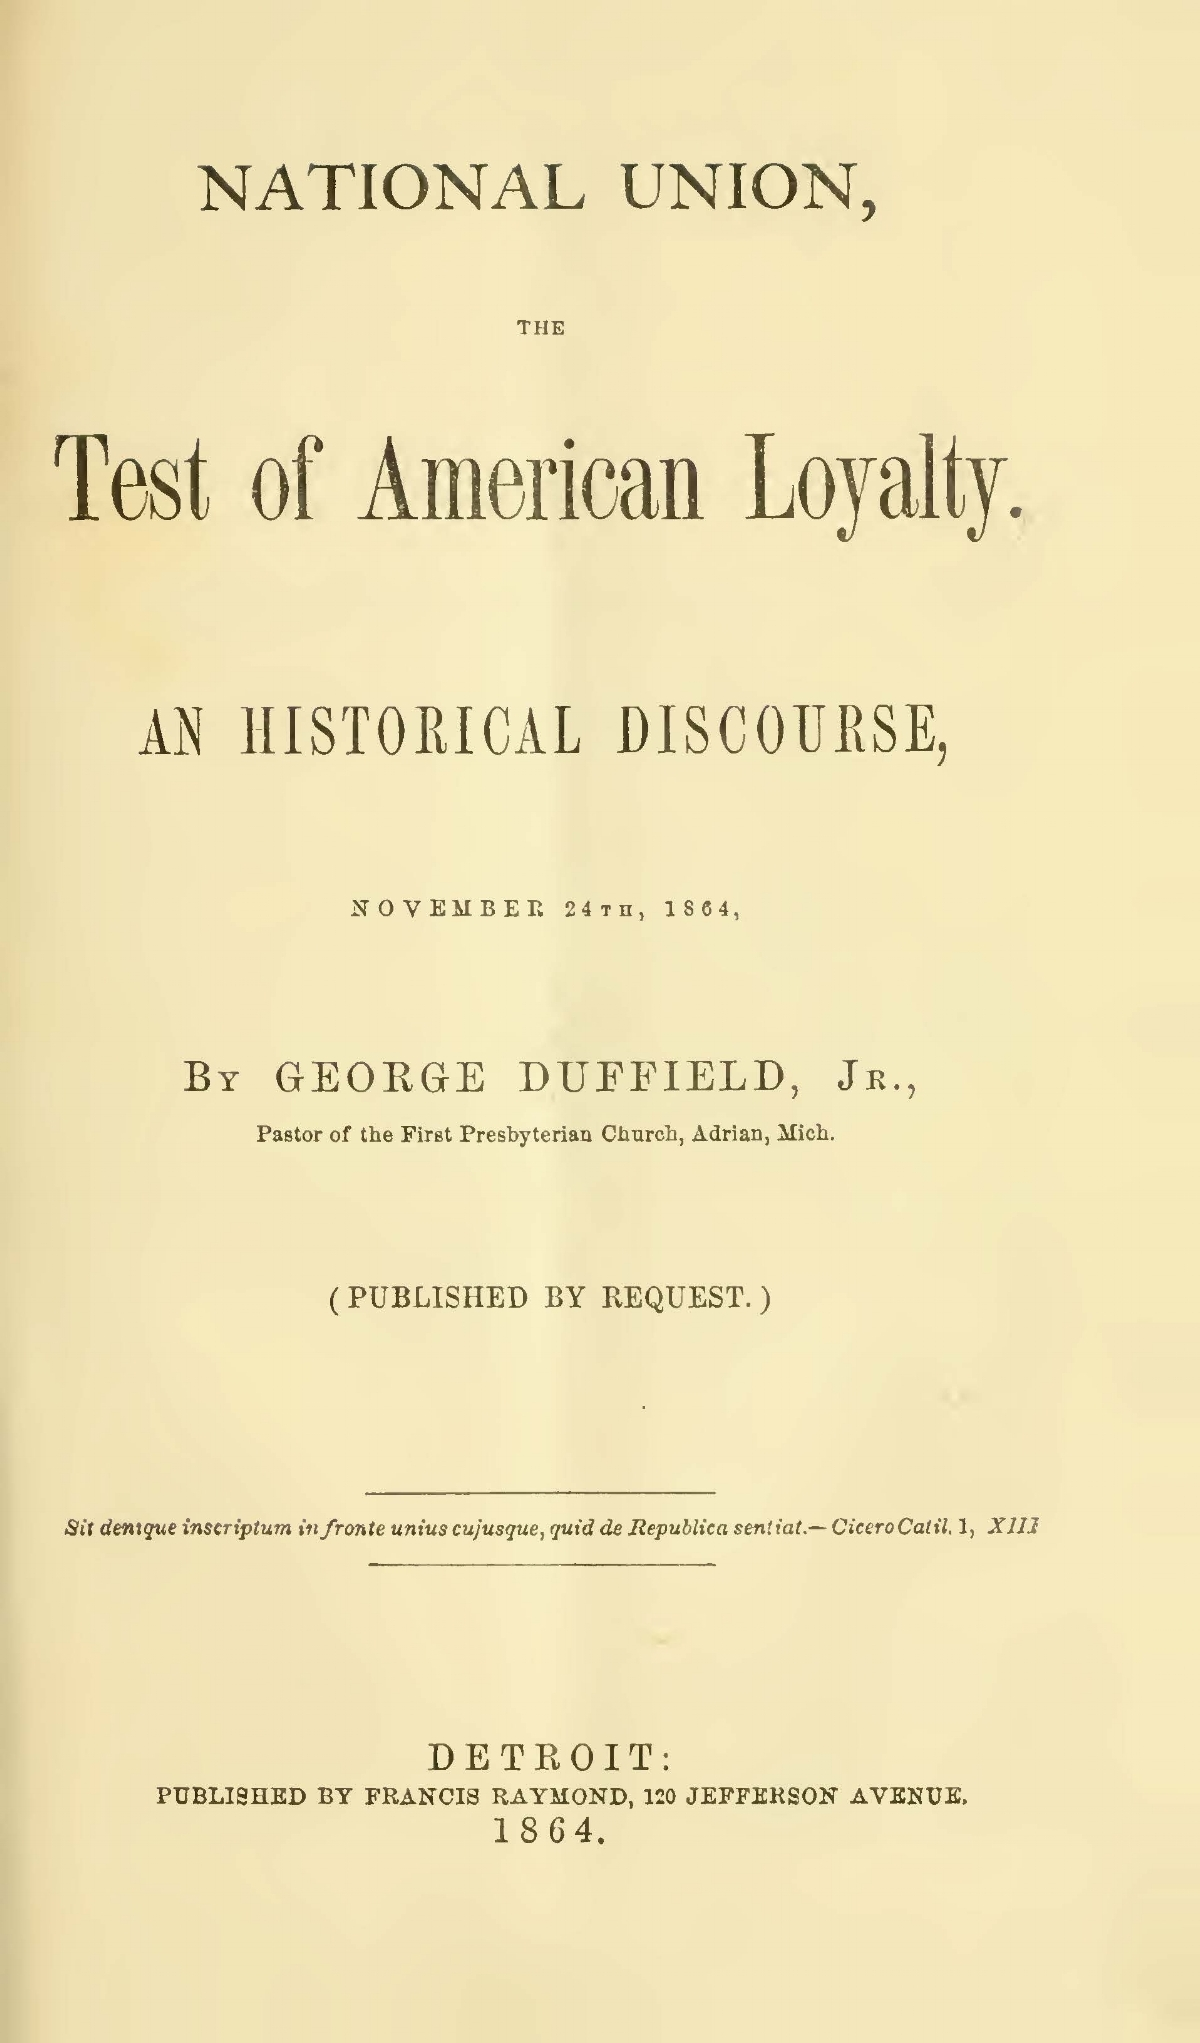 Duffield, V, George, National Union, the Test of American Loyalty Title Page.jpg